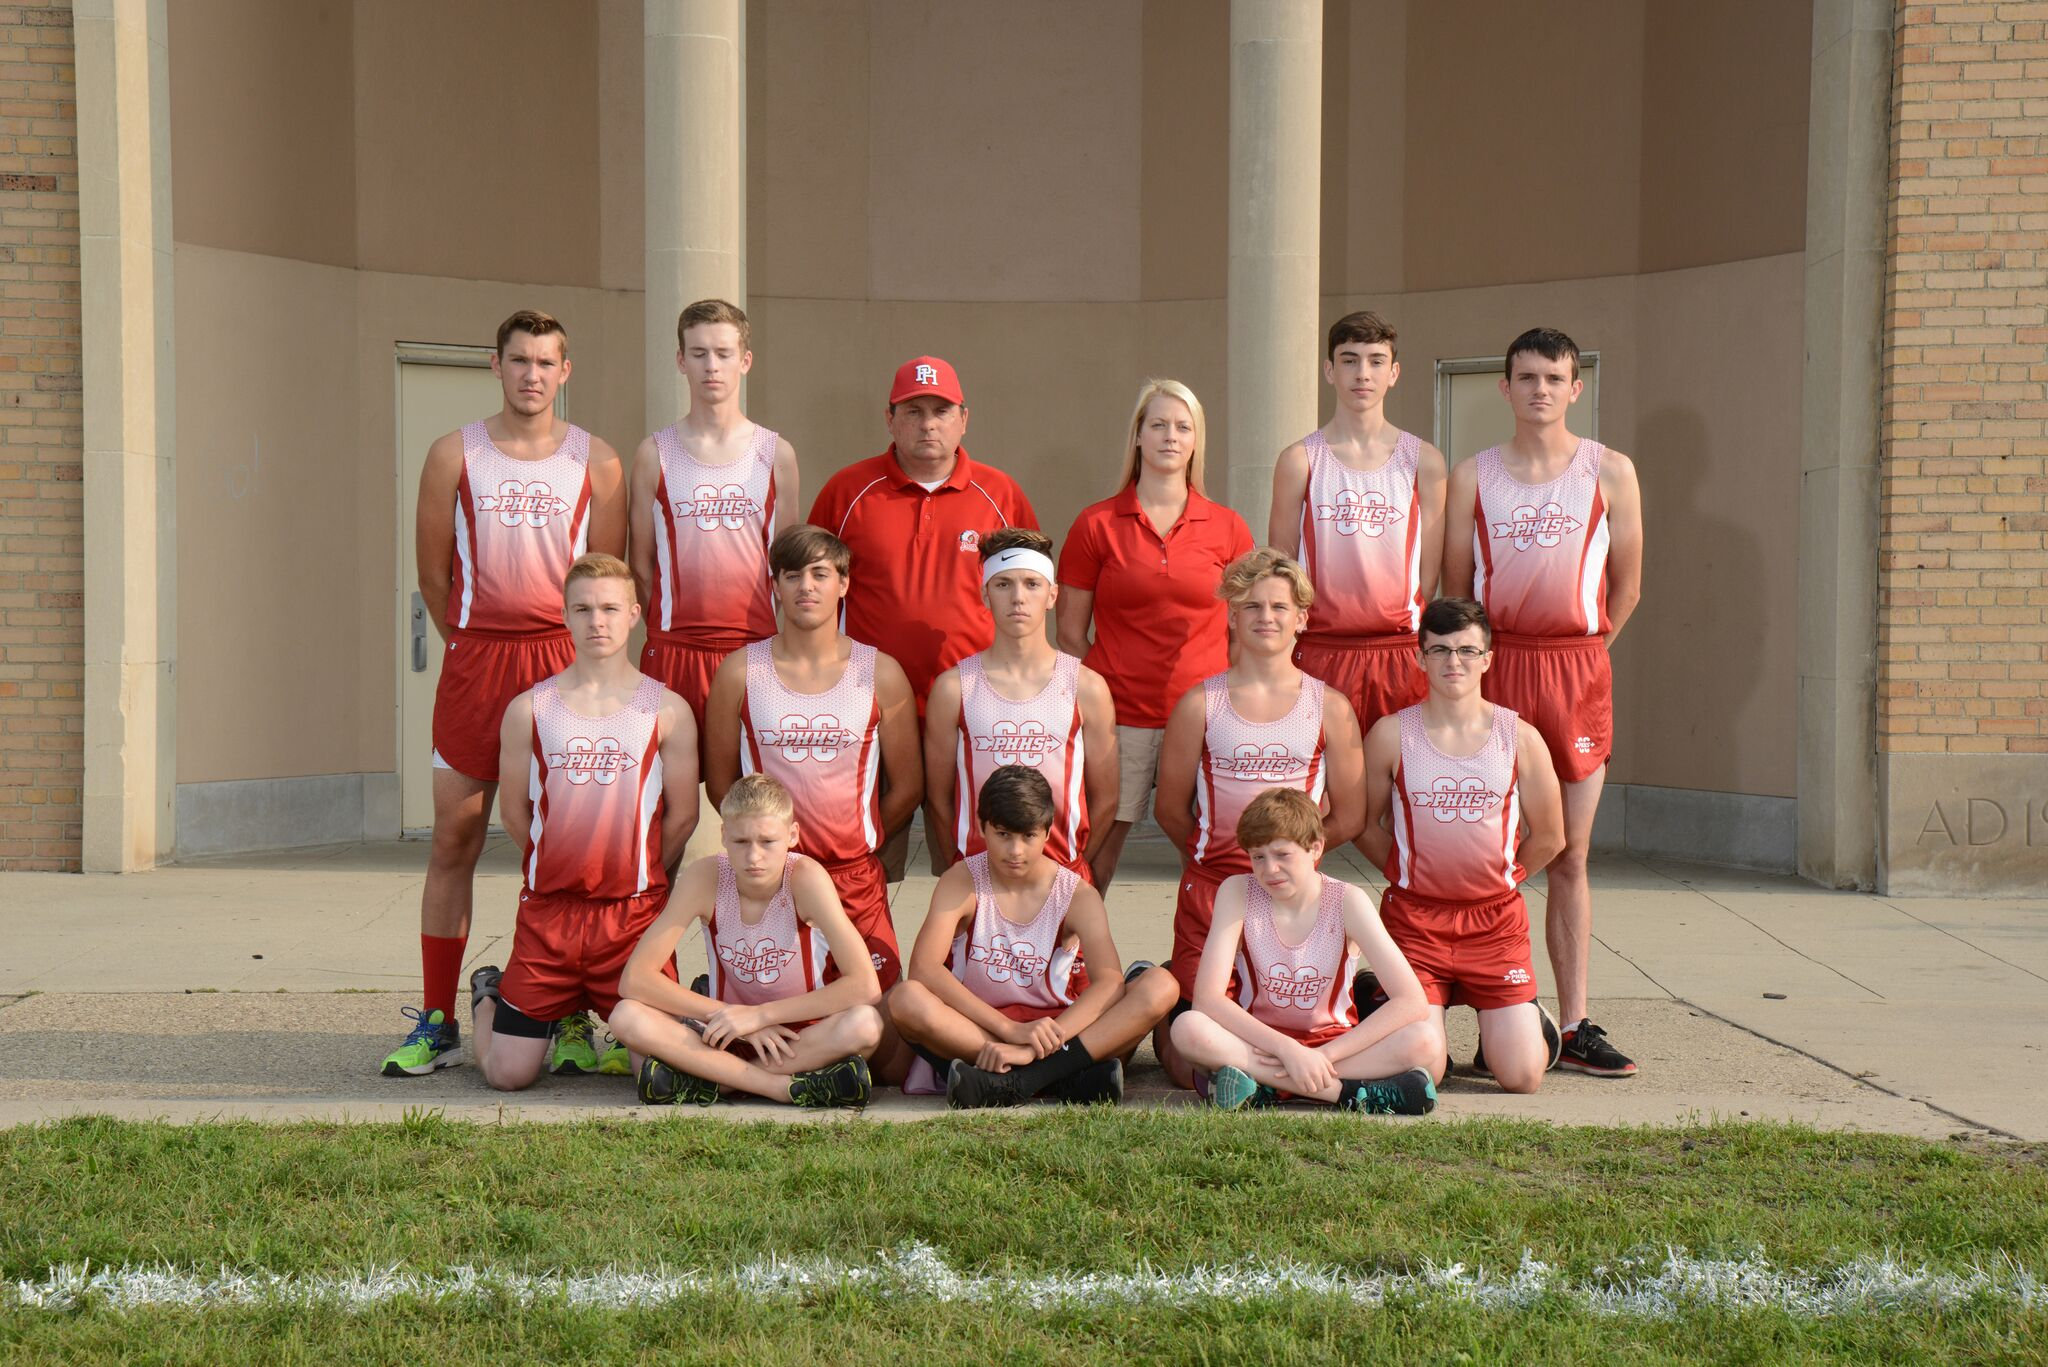 Boy's Cross Country Team Brings Home 1st Place at Memphis Invitational